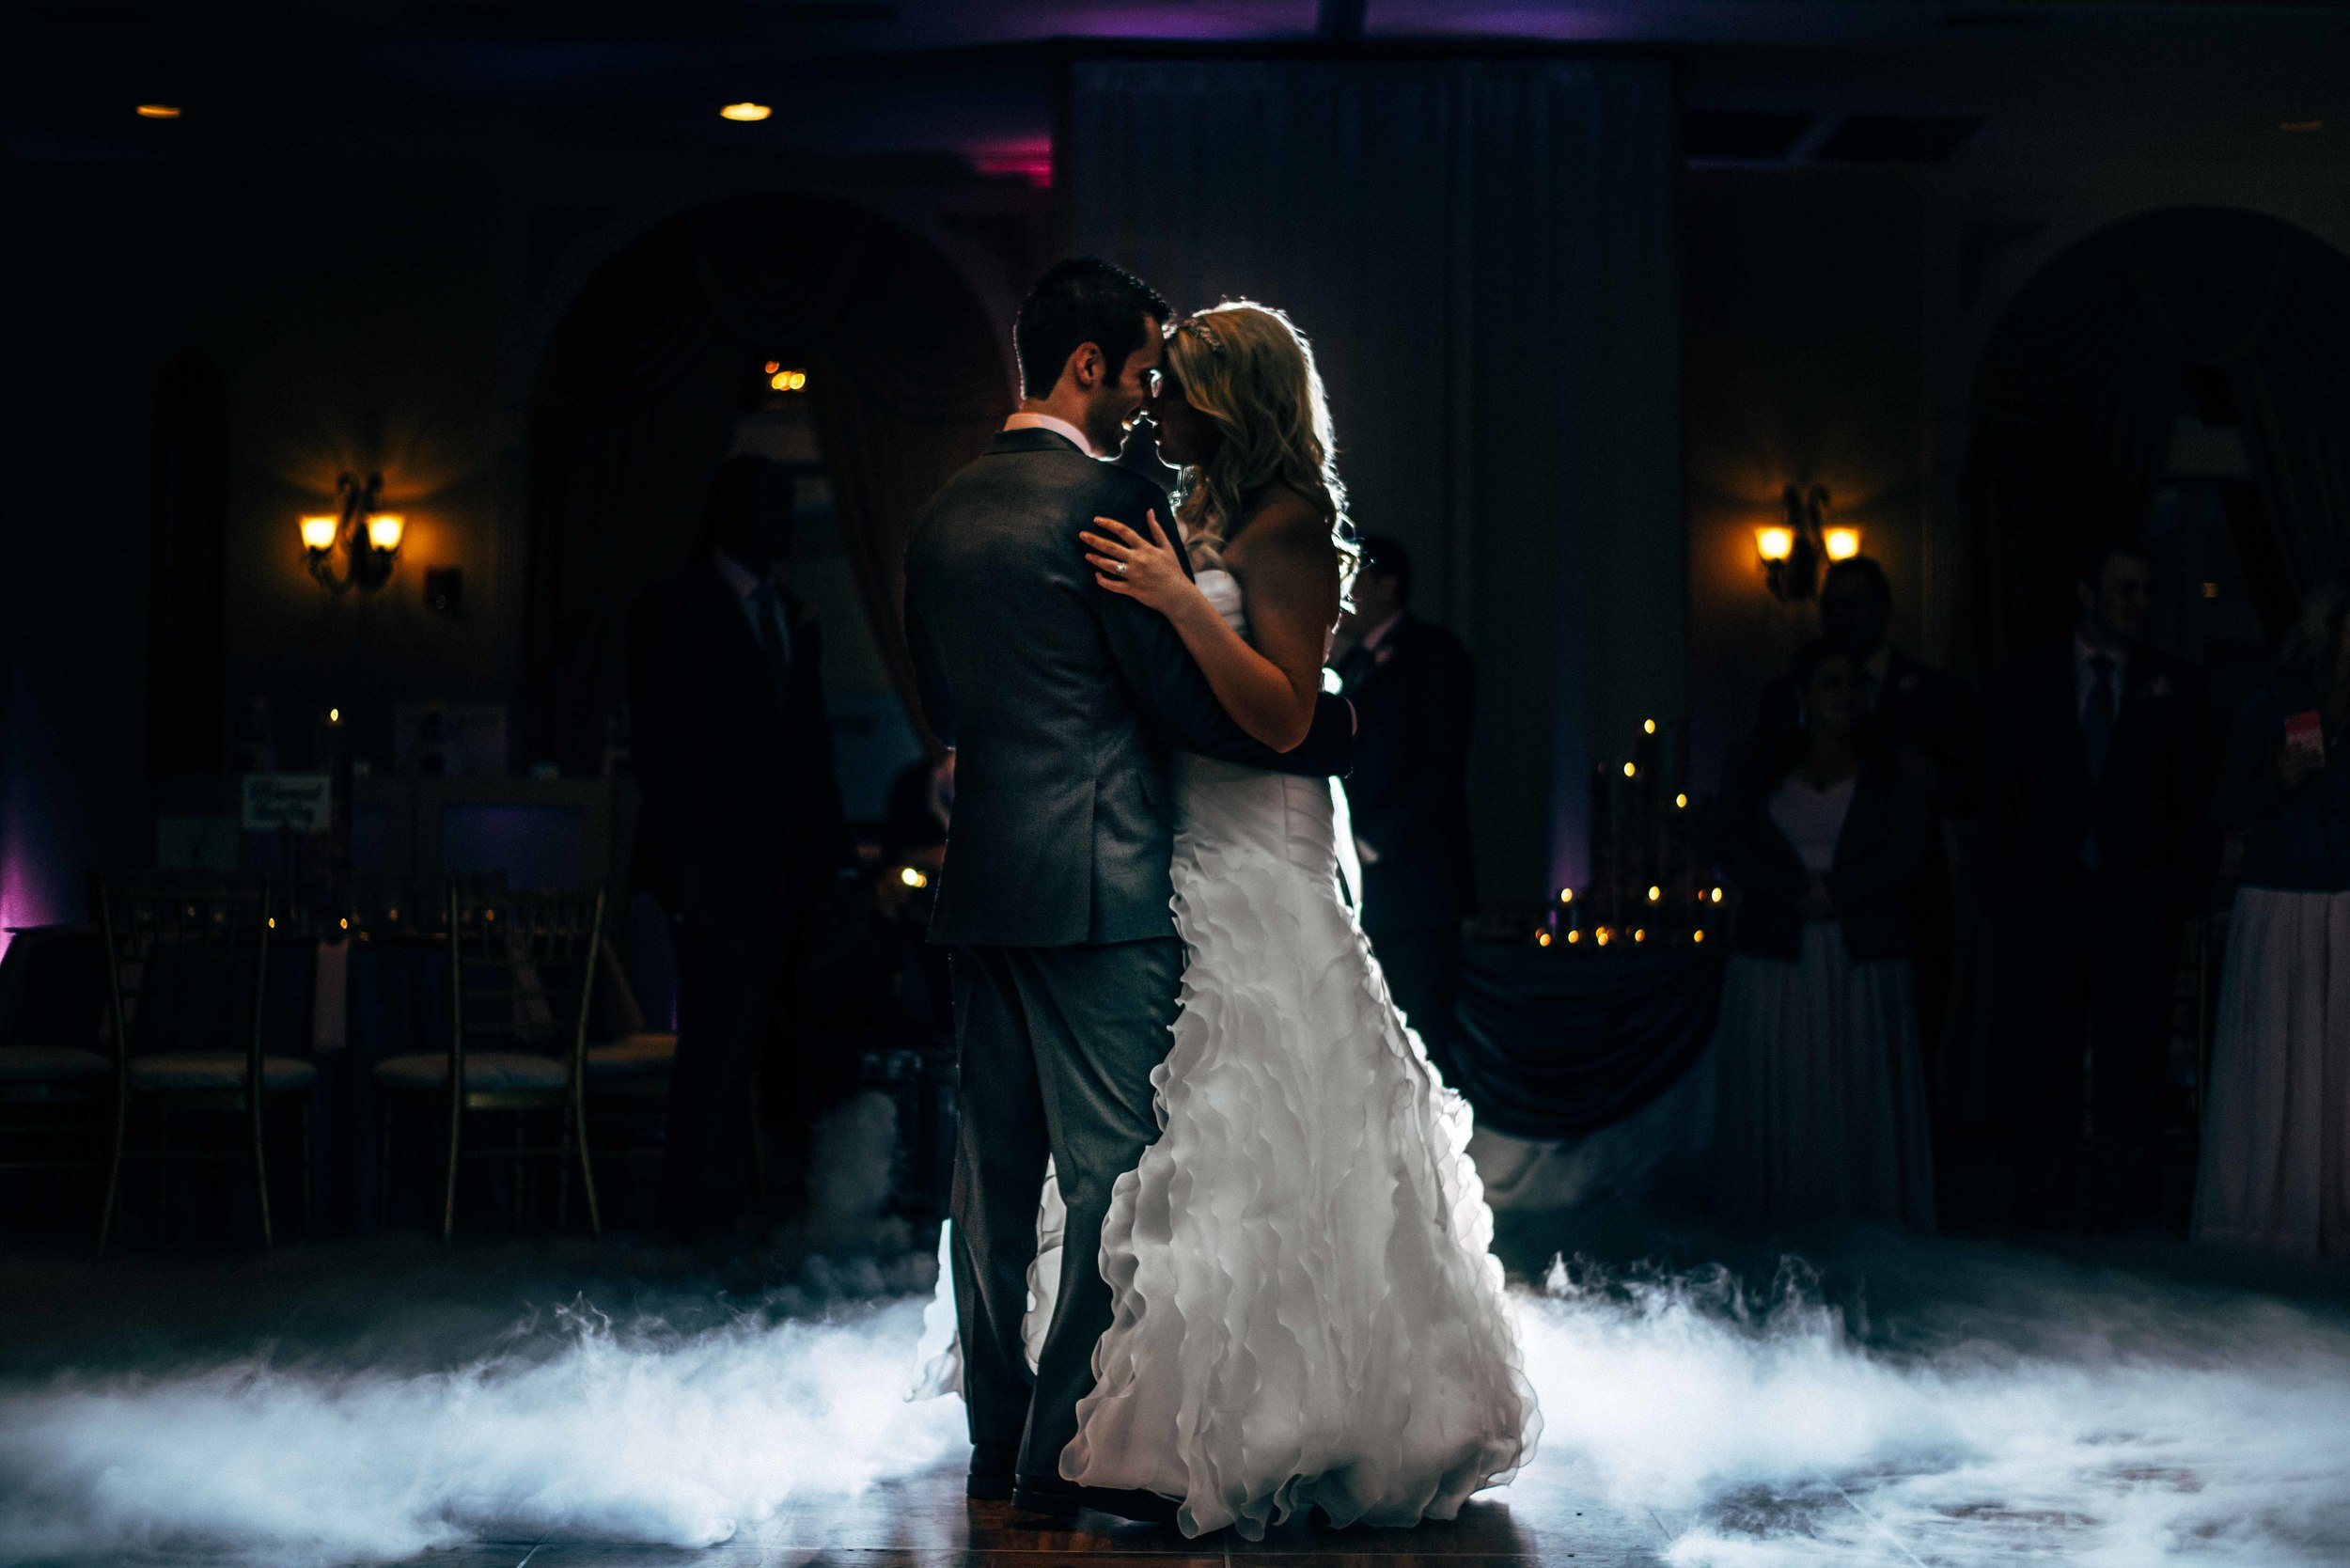 DJ Eddie G  surprised the couple with a dry ice/fog machine mixture during their first dance.It looked like they were dancing on clouds!